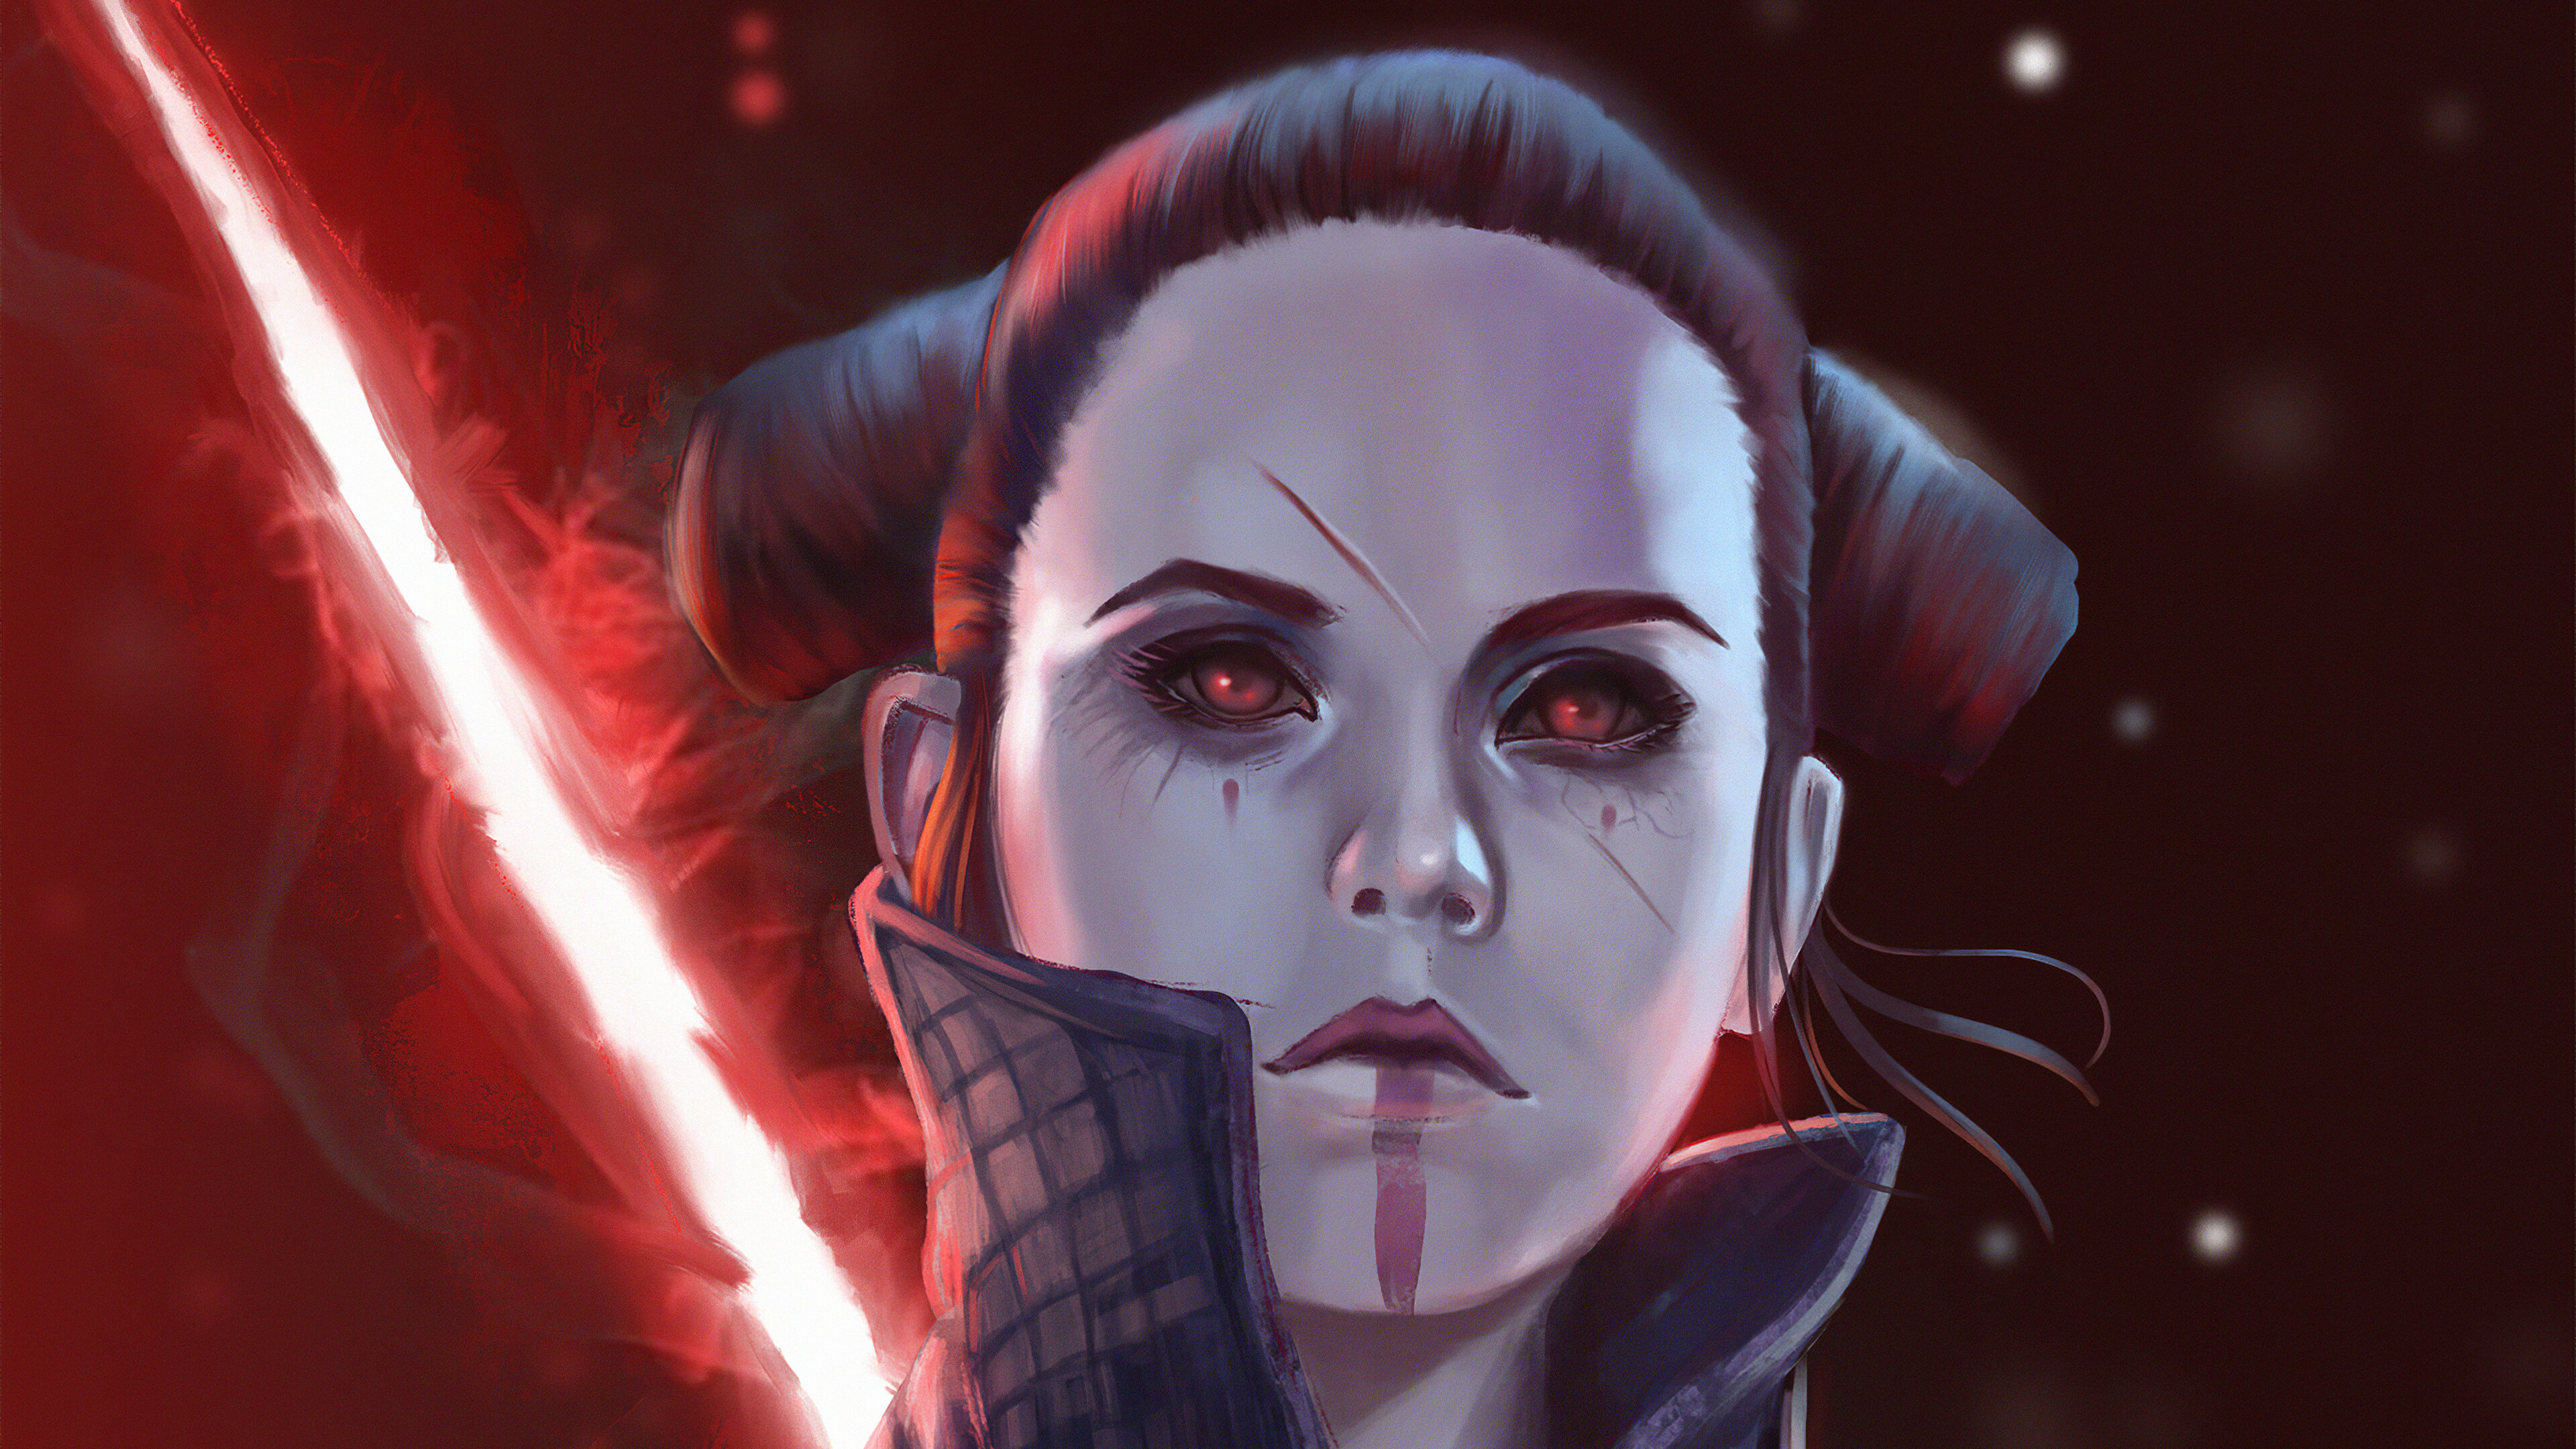 Darth Rey 4k Ultra Hd Wallpaper Background Image 3840x2160 Id 1074177 Wallpaper Abyss